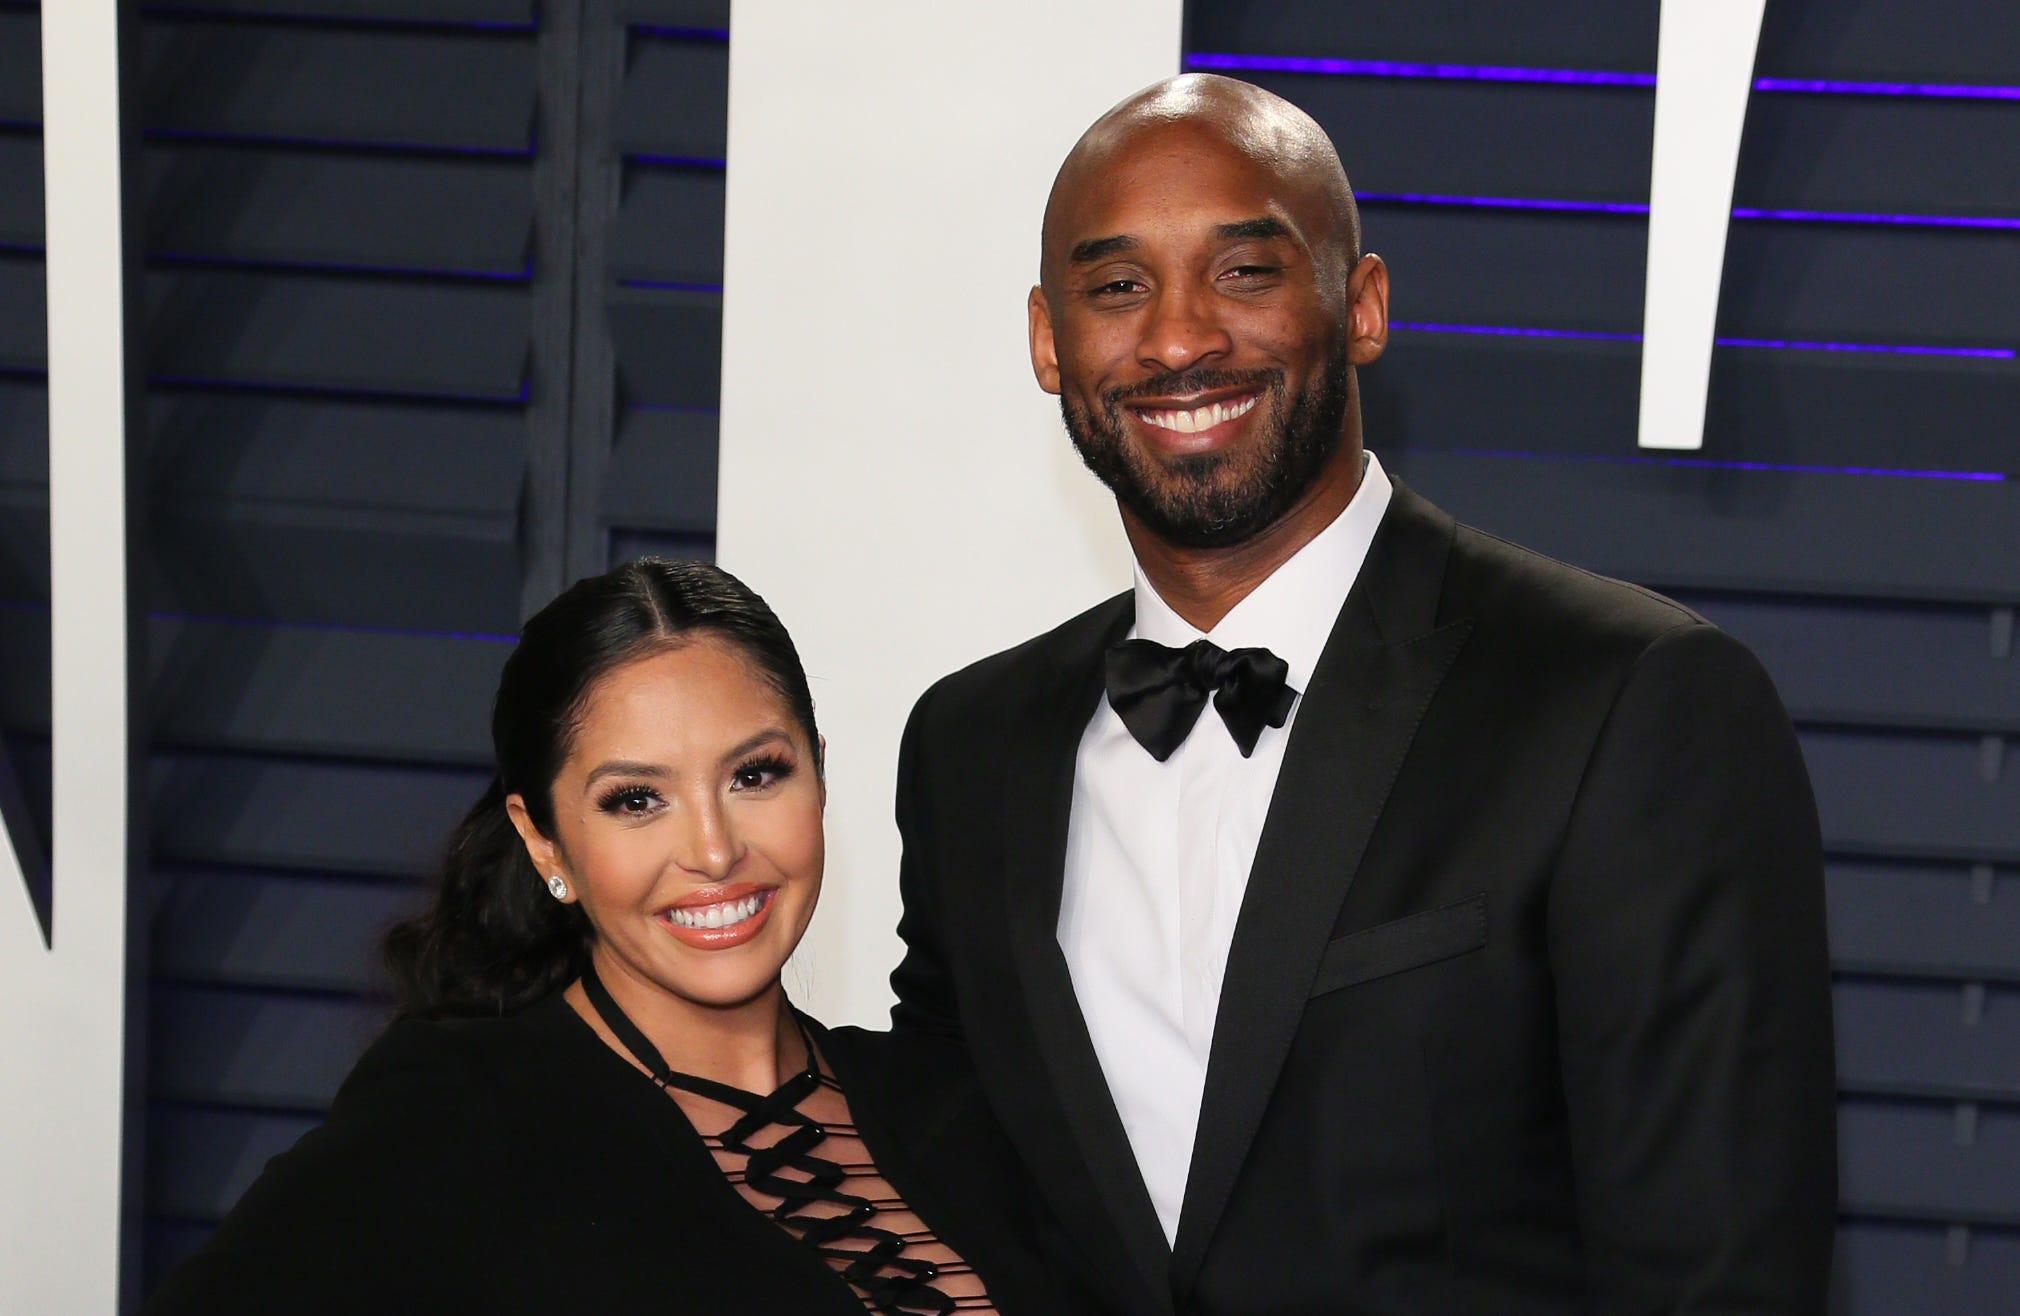 Vanessa Bryant posts emotional congrats to Lakers: 'Wish Kobe and Gigi were here to see this'